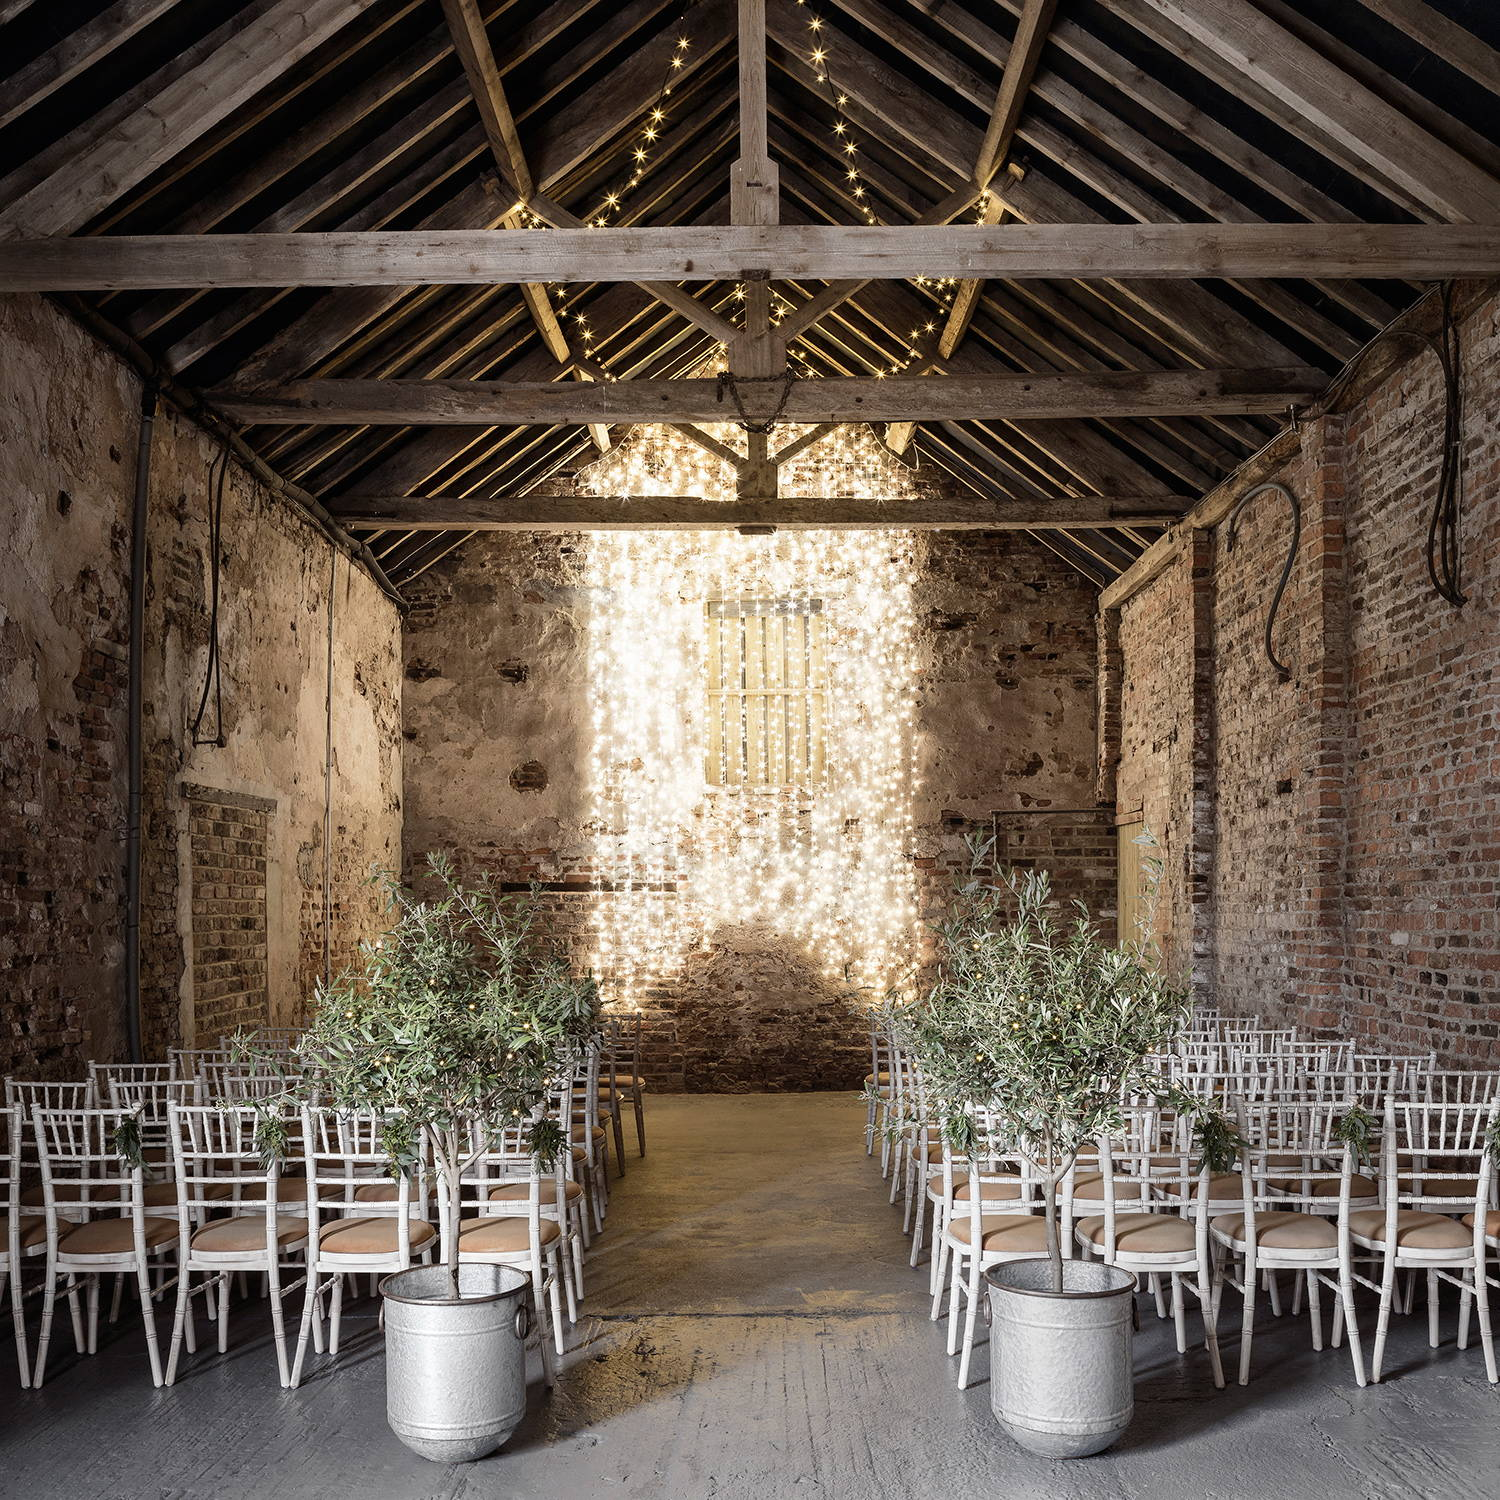 A barn wedding venue with a warm white fairy light backdrop